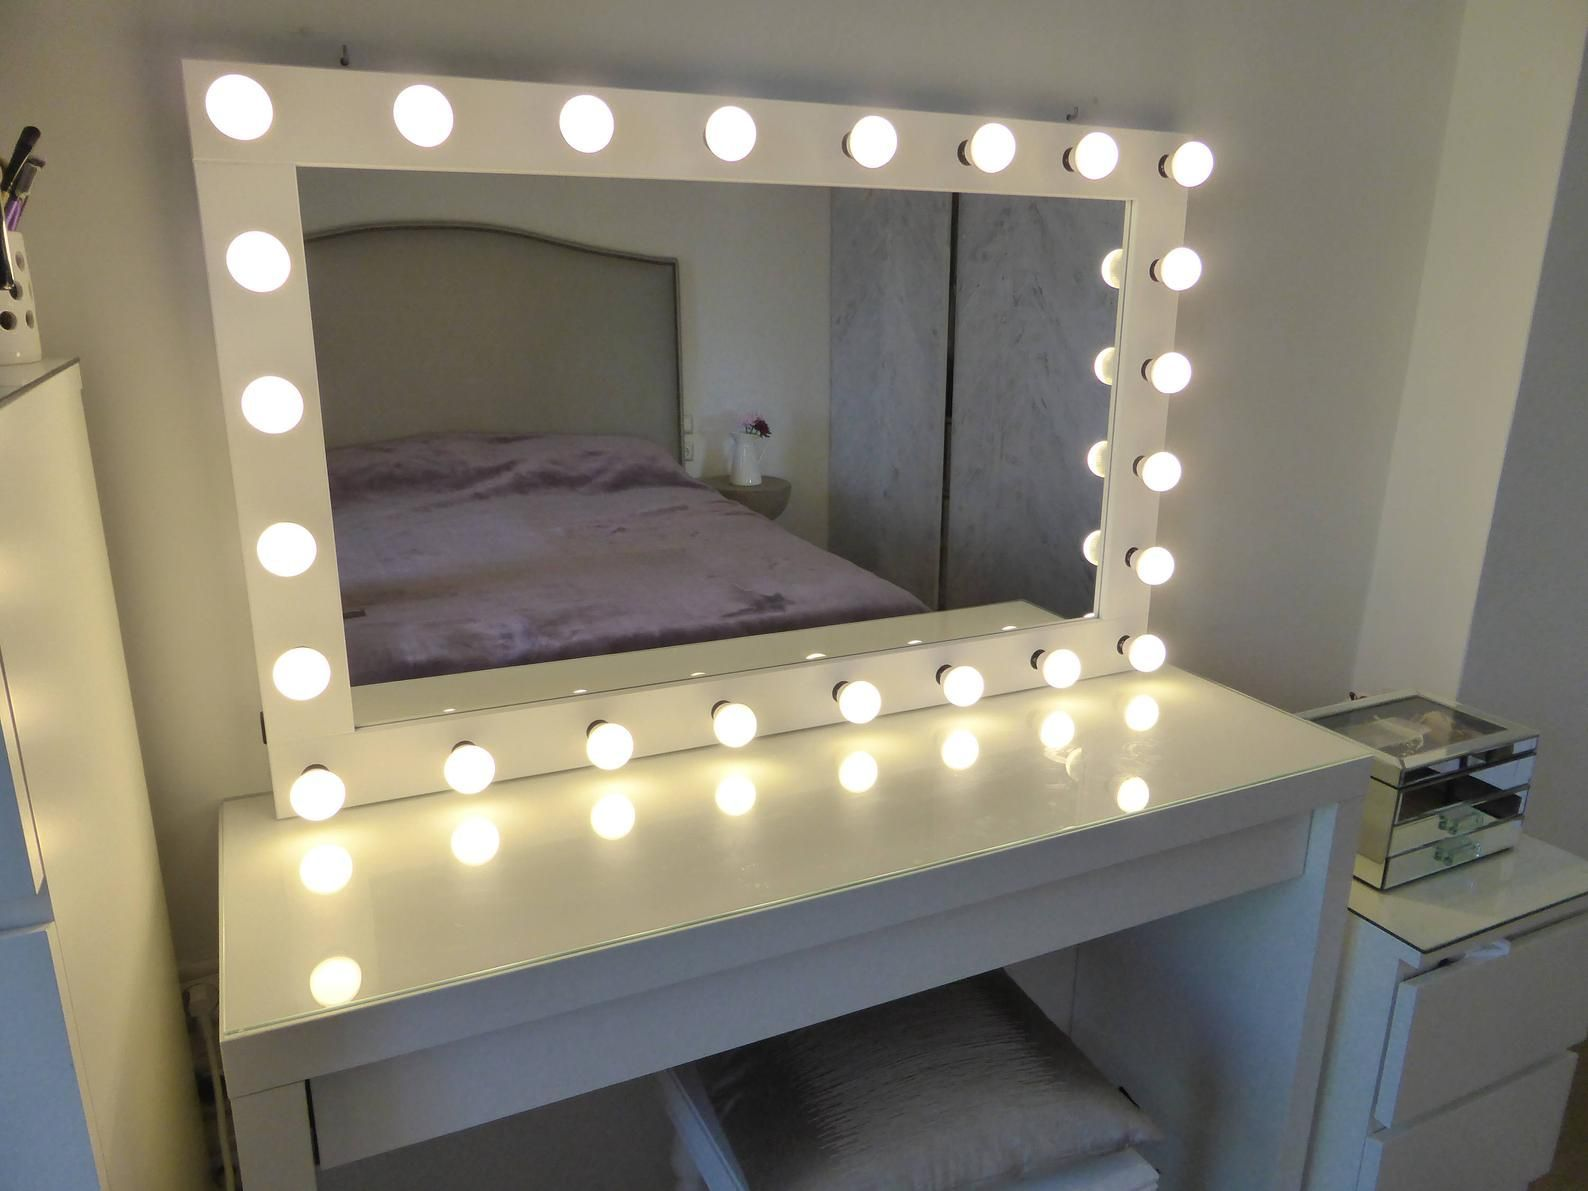 Super Verkauf Xxl Kosmetikspiegel 43 X 27 Hollywood Make Up Spiegel Mit Lichter In 2020 Hollywood Lighted Vanity Mirror Lighted Vanity Mirror Diy Vanity Mirror